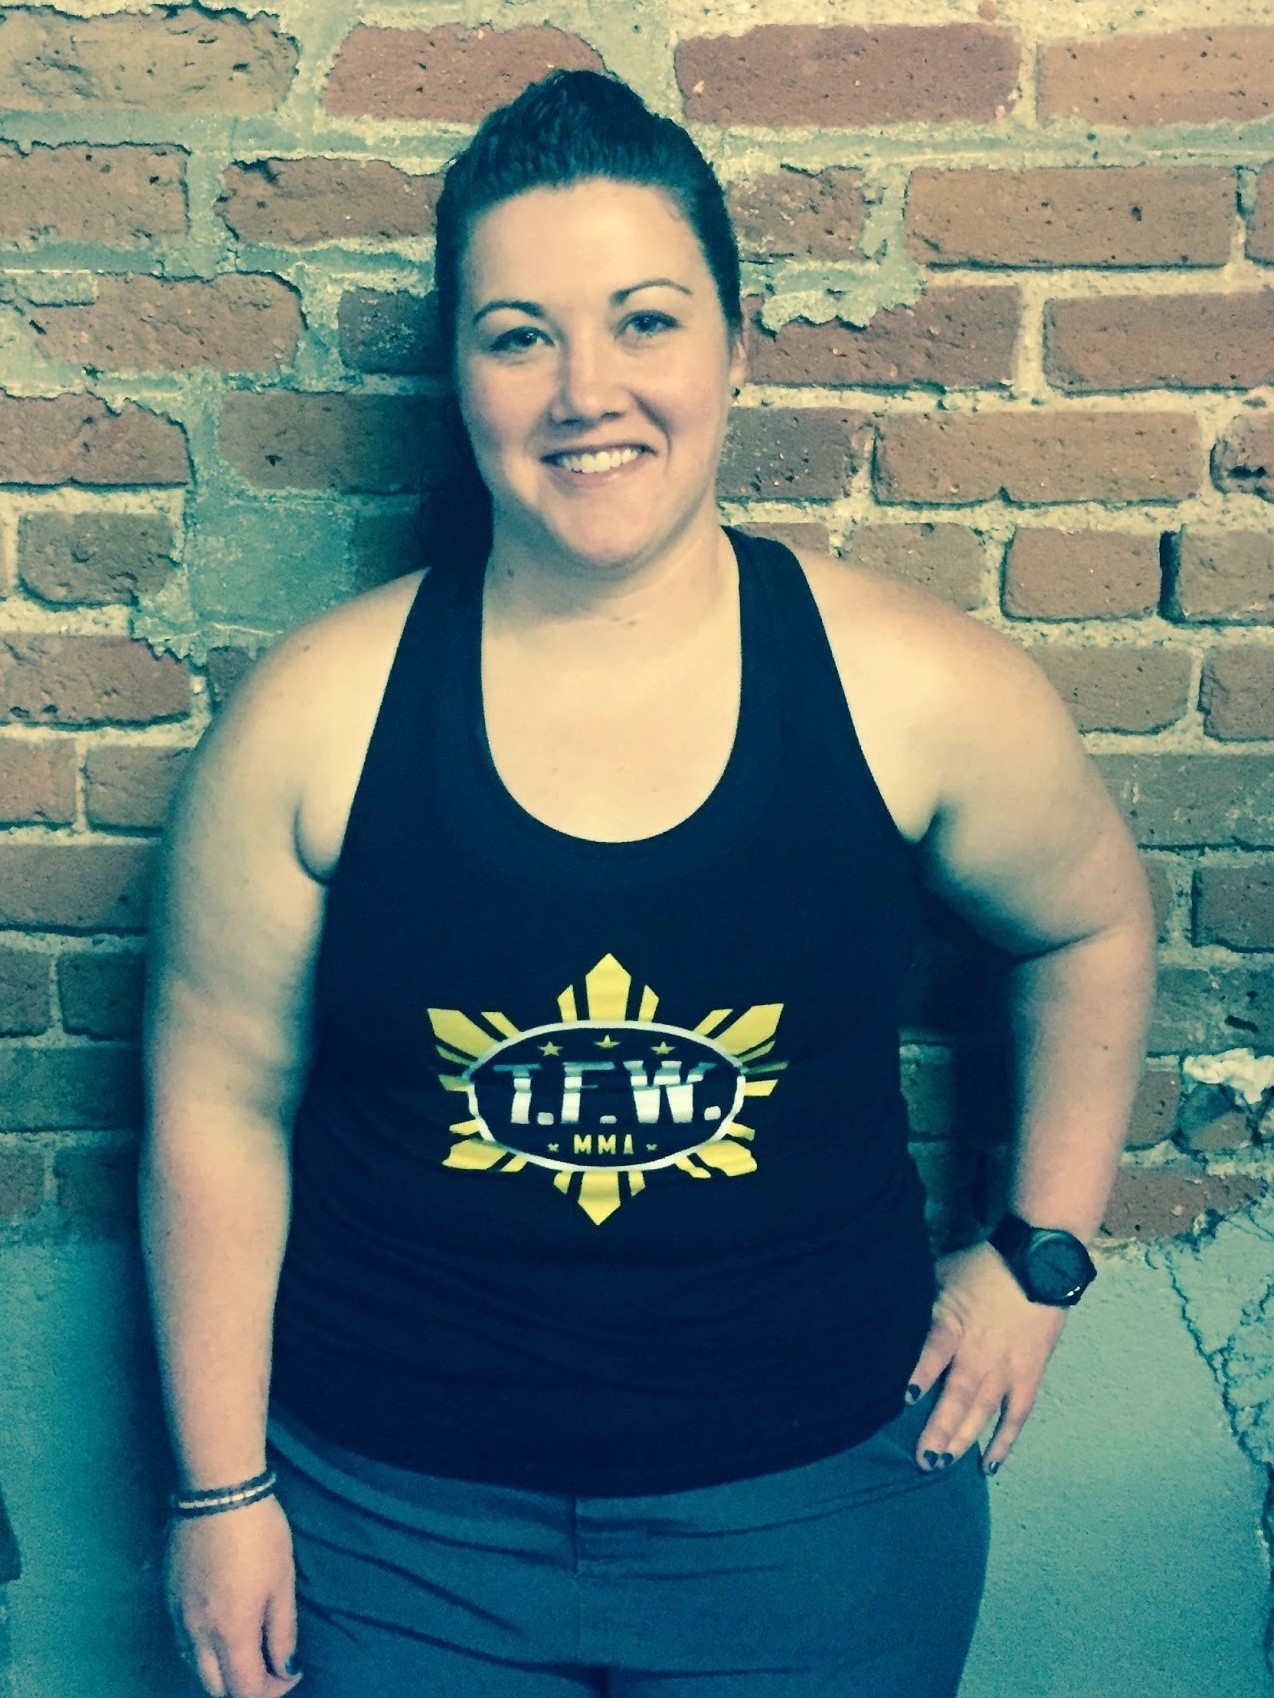 SJ WallaceStriking Coach - Striking, Conditioning, Weightlifting. Best head movement in the gym